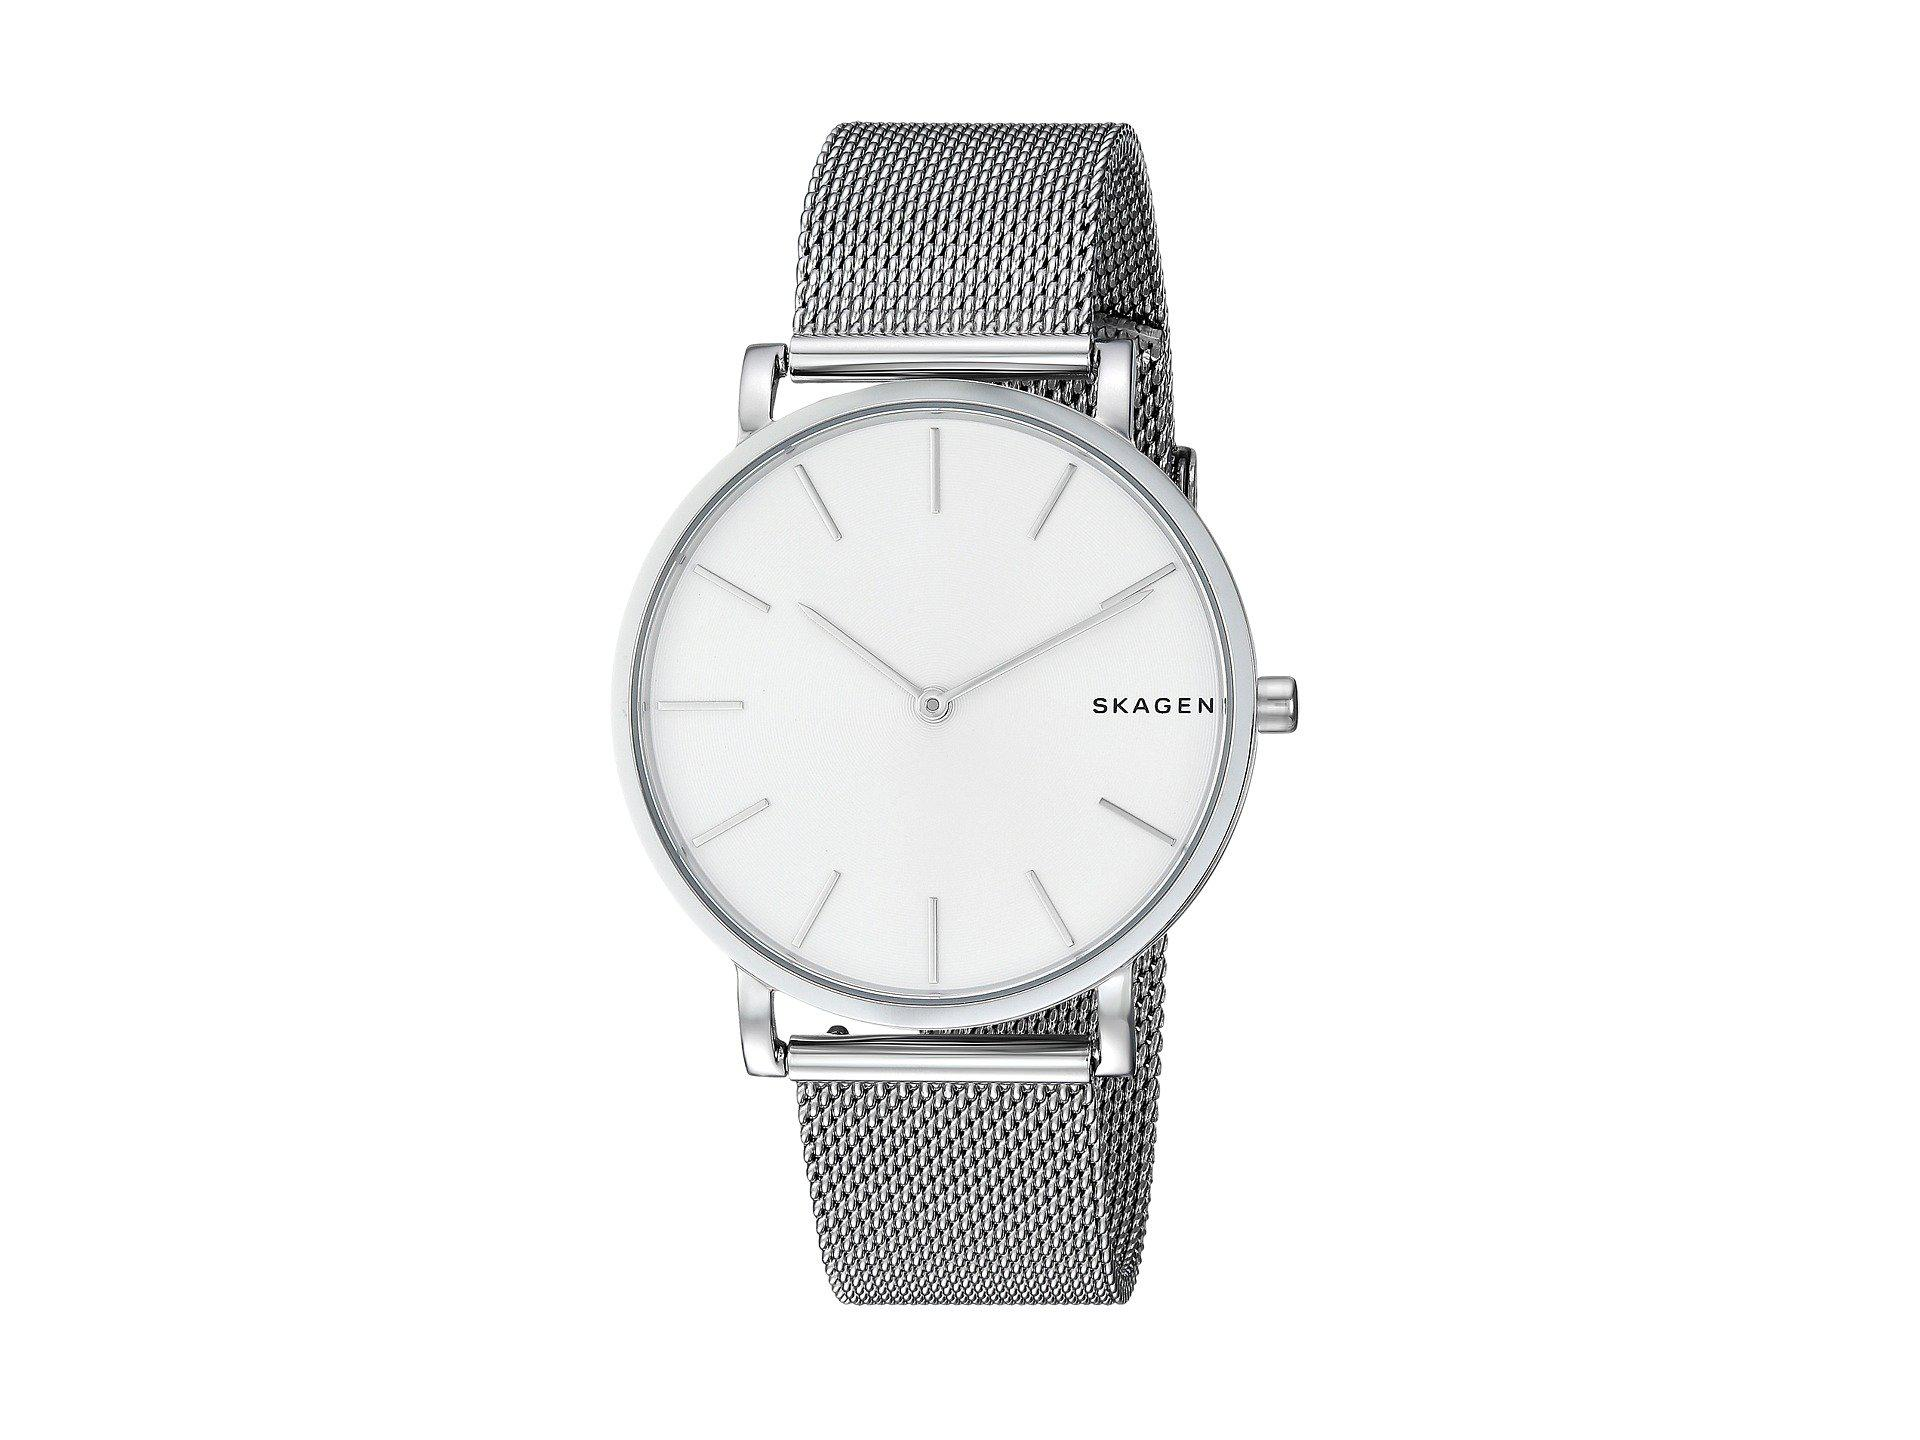 watch skagen hagen watches